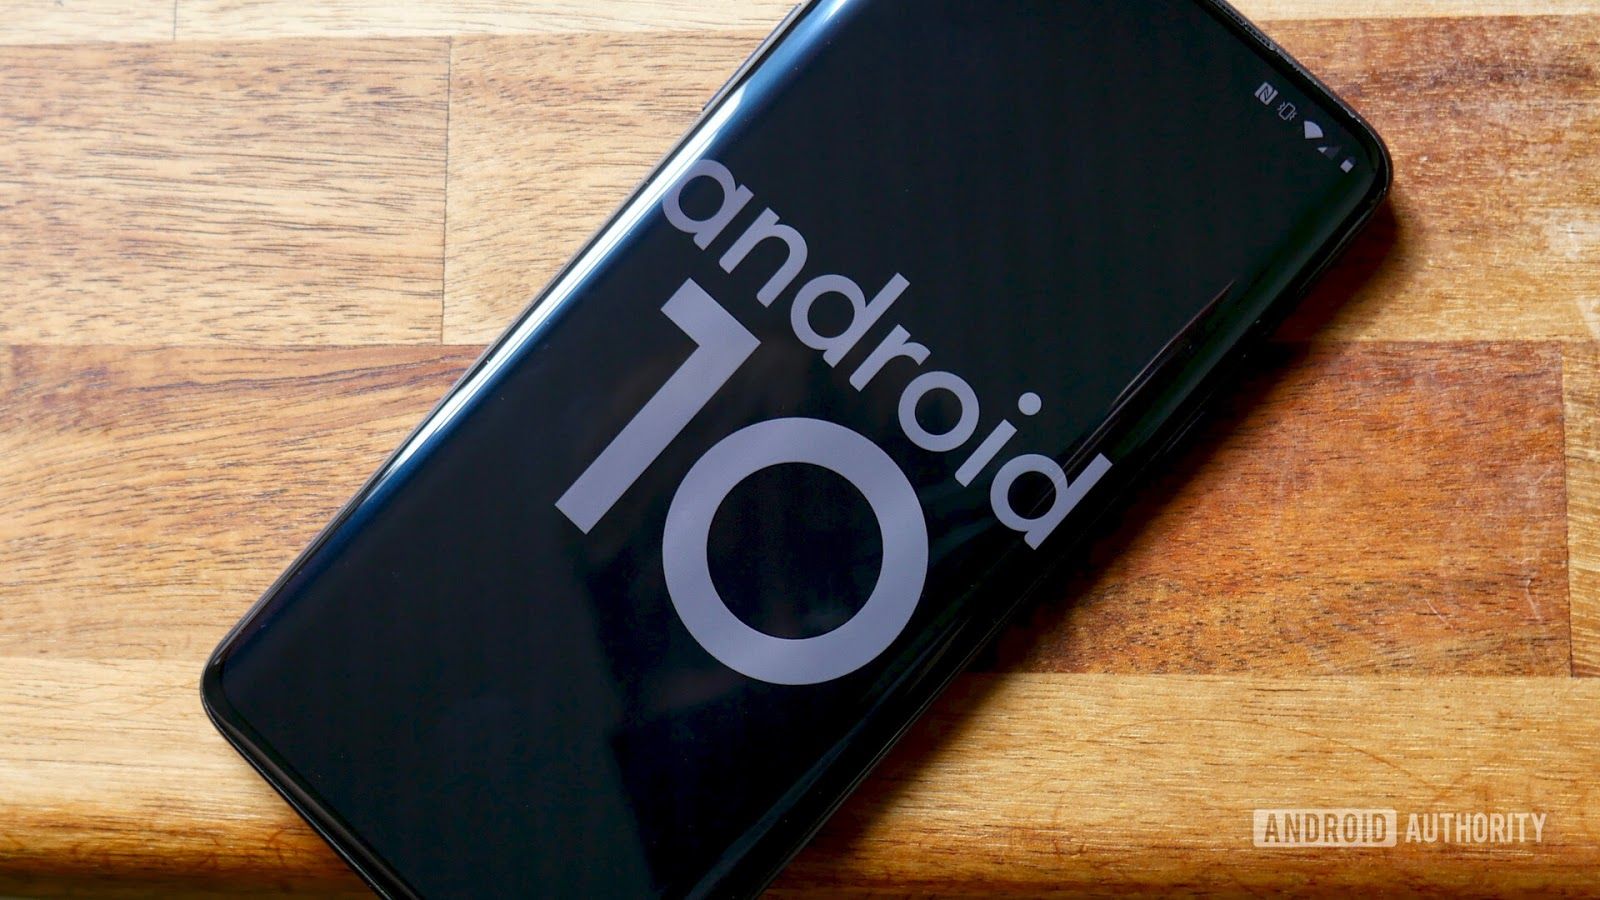 Android 10 update release for Samsung Galaxy Note 10/10+